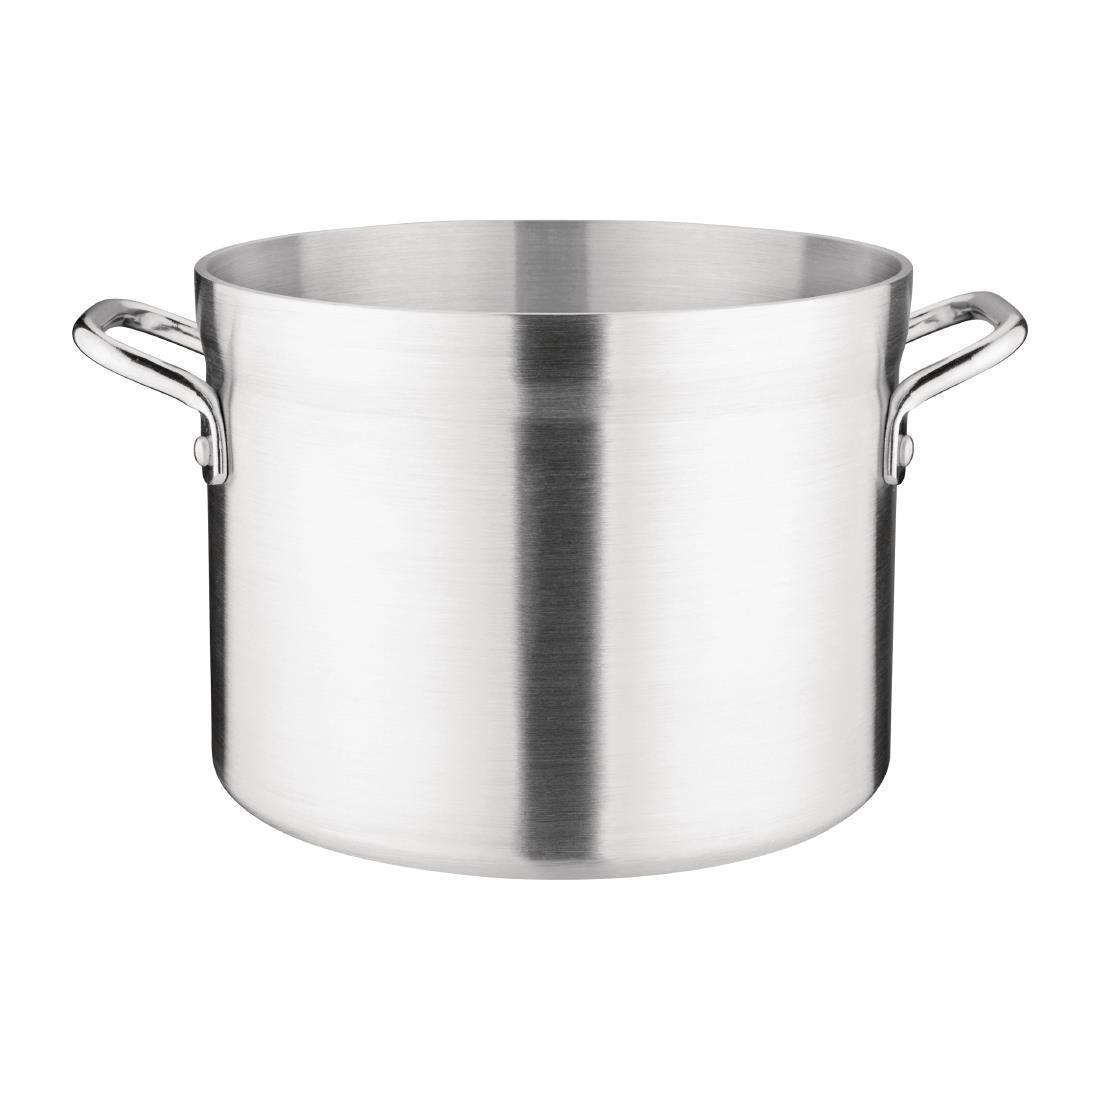 Vogue Deep Boiling Pot 7.6Ltr - S348